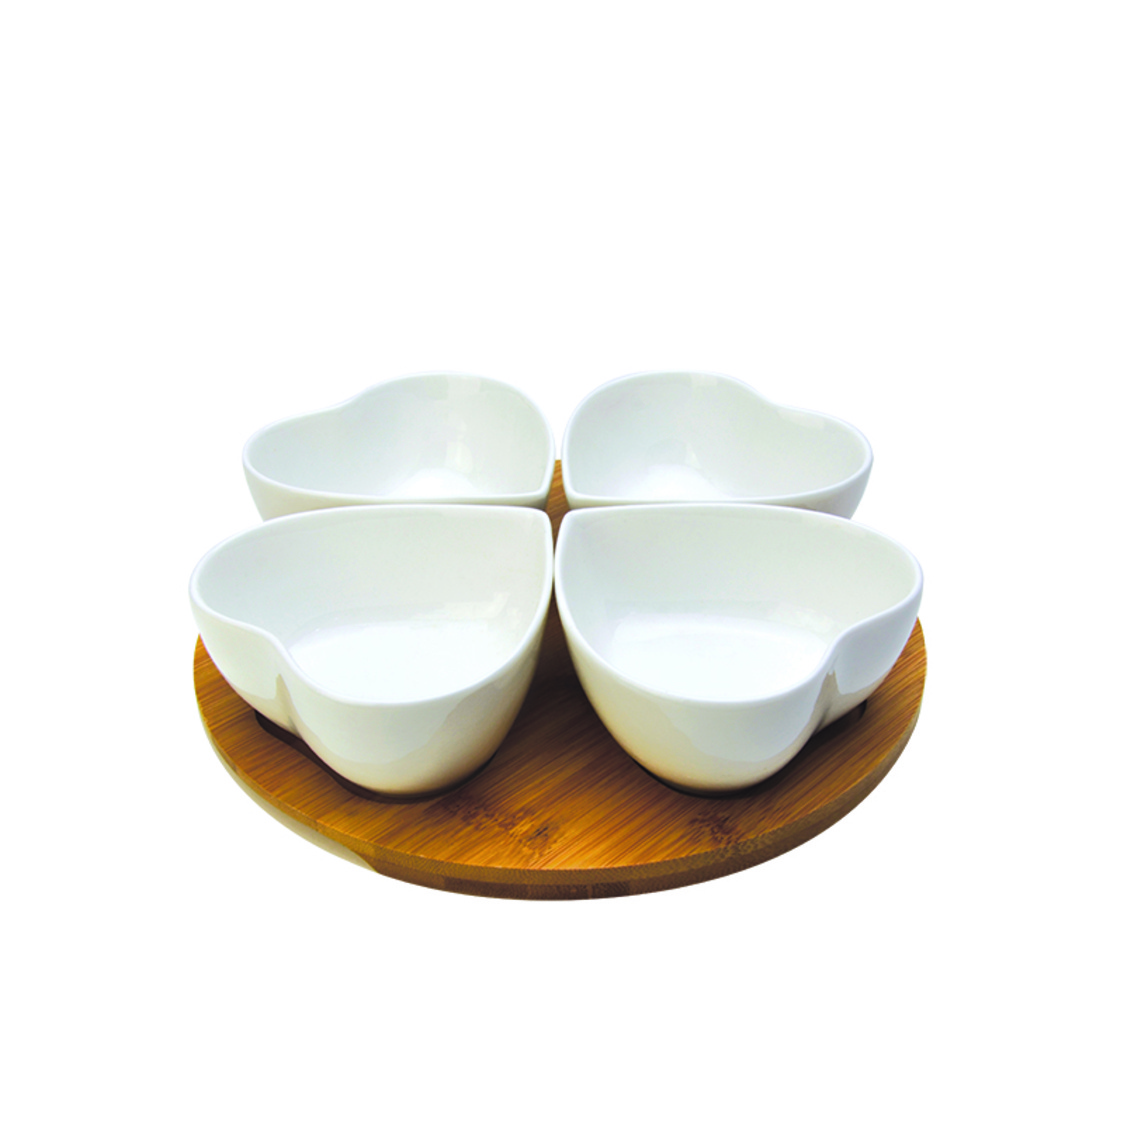 Passion 4 Condiment Bowls On Bamboo Base SR-51